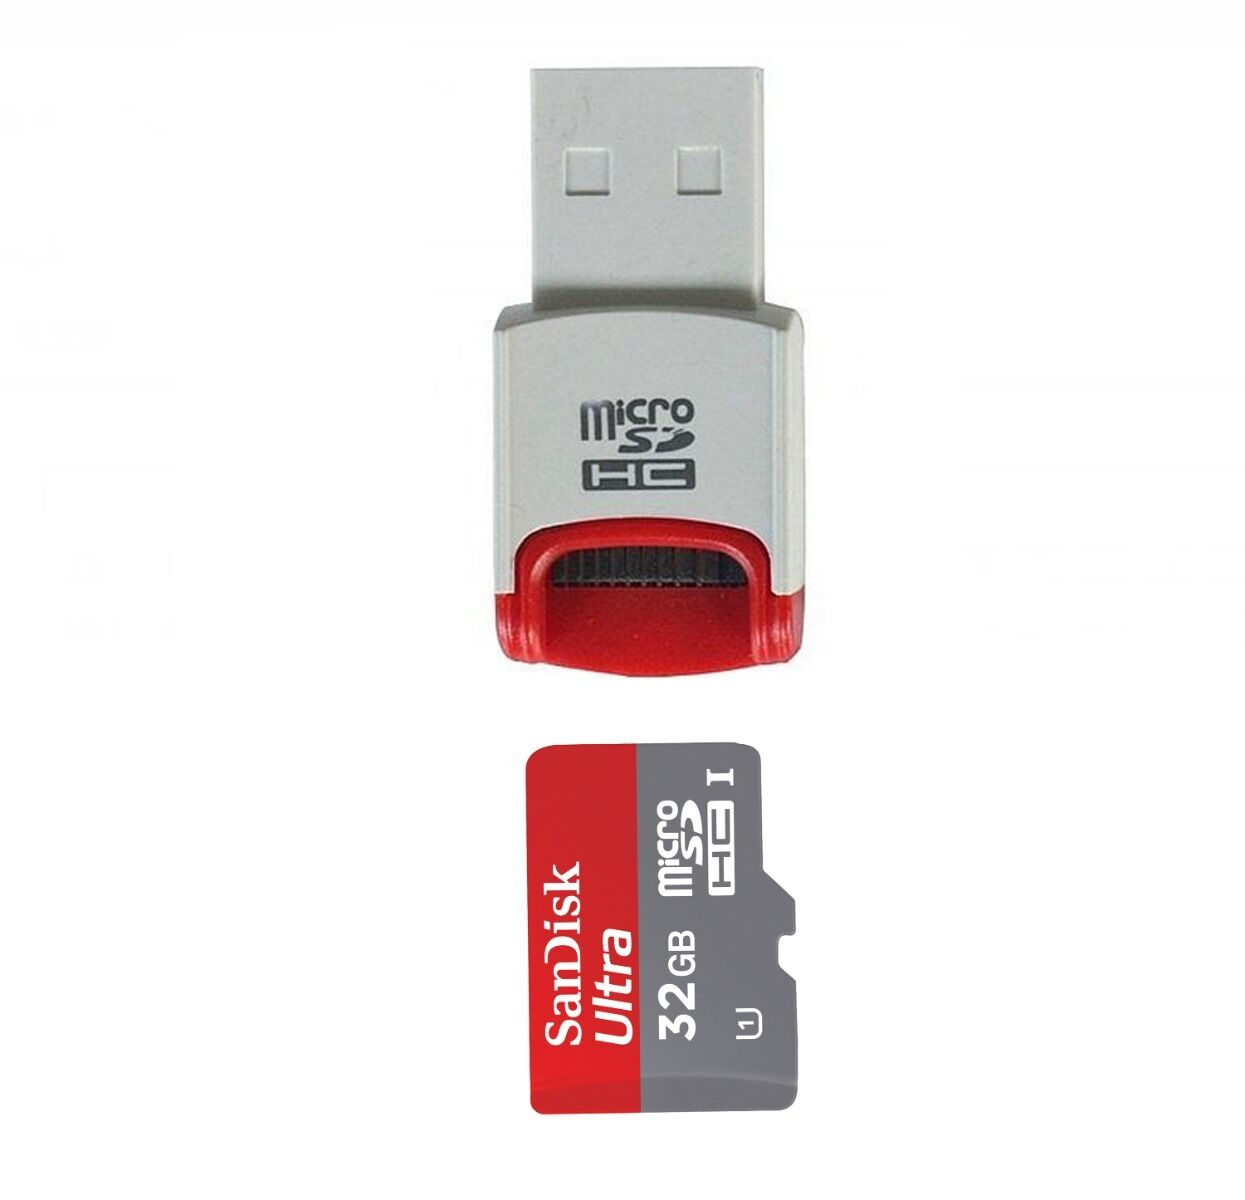 new portable mini usb 2 0 adapter microsd sdhc memory card. Black Bedroom Furniture Sets. Home Design Ideas